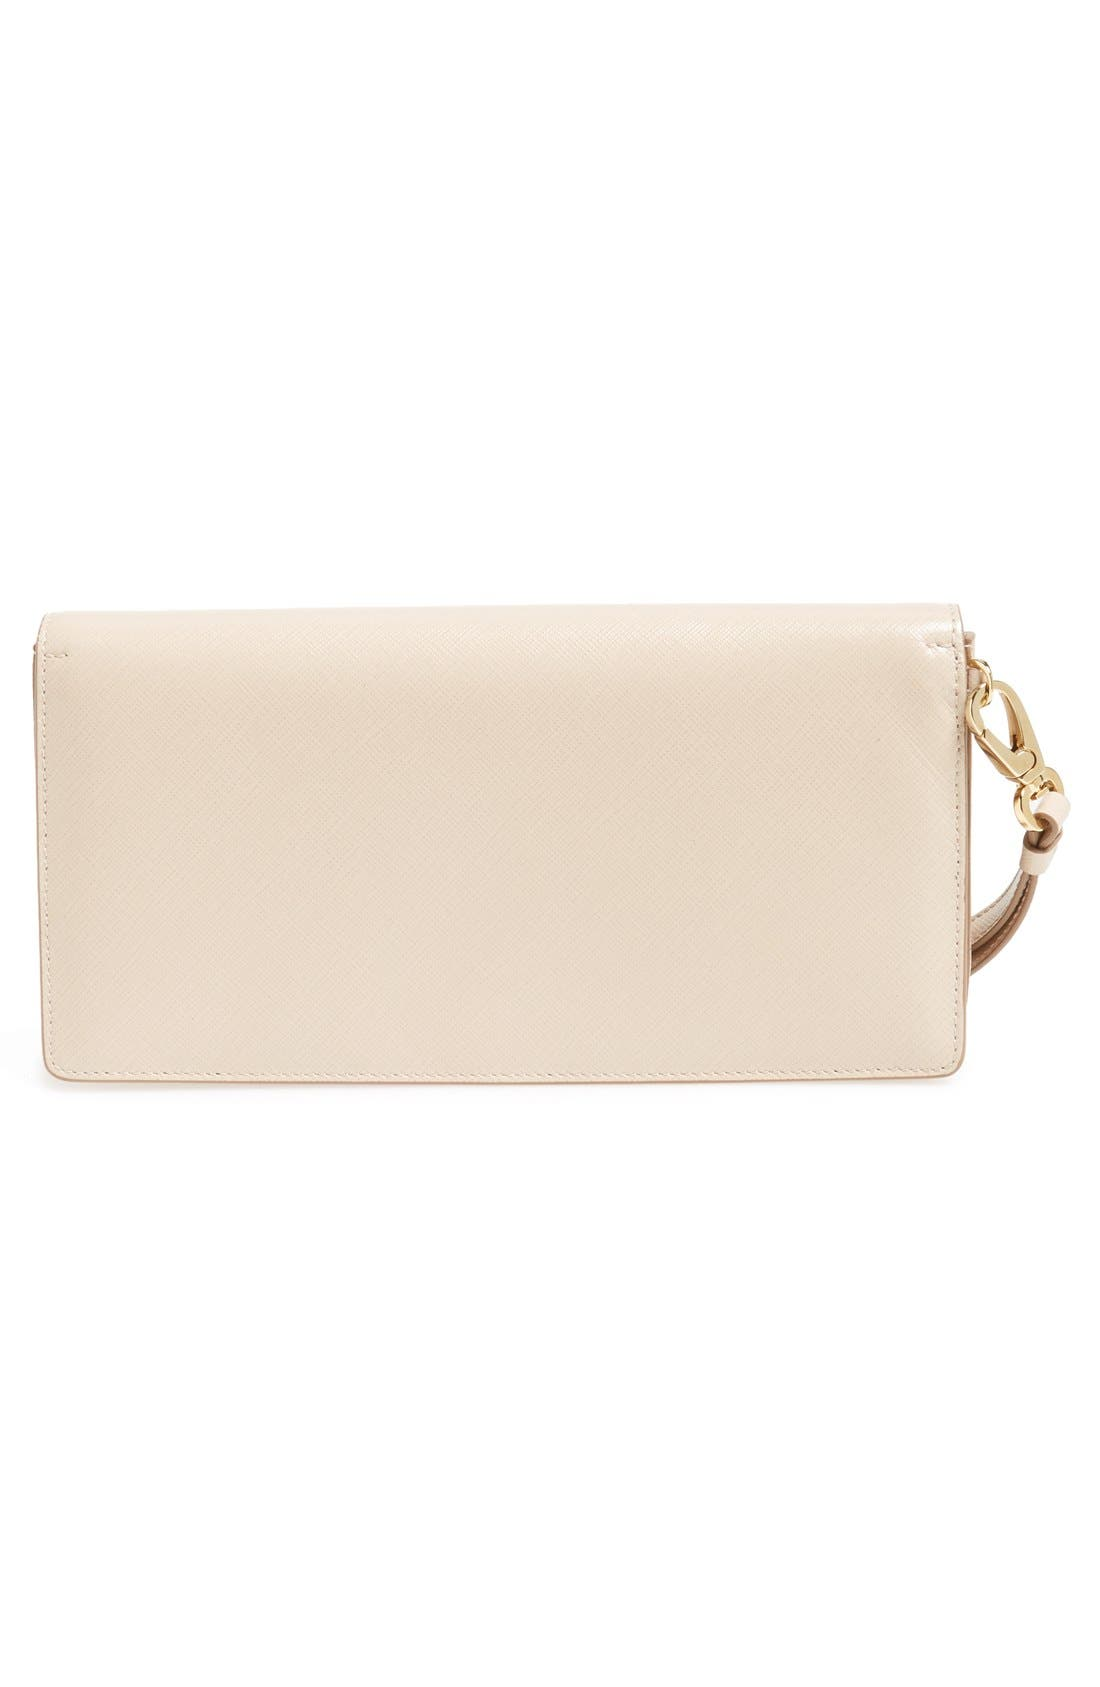 'Camy' Clutch,                             Alternate thumbnail 4, color,                             New Bisque